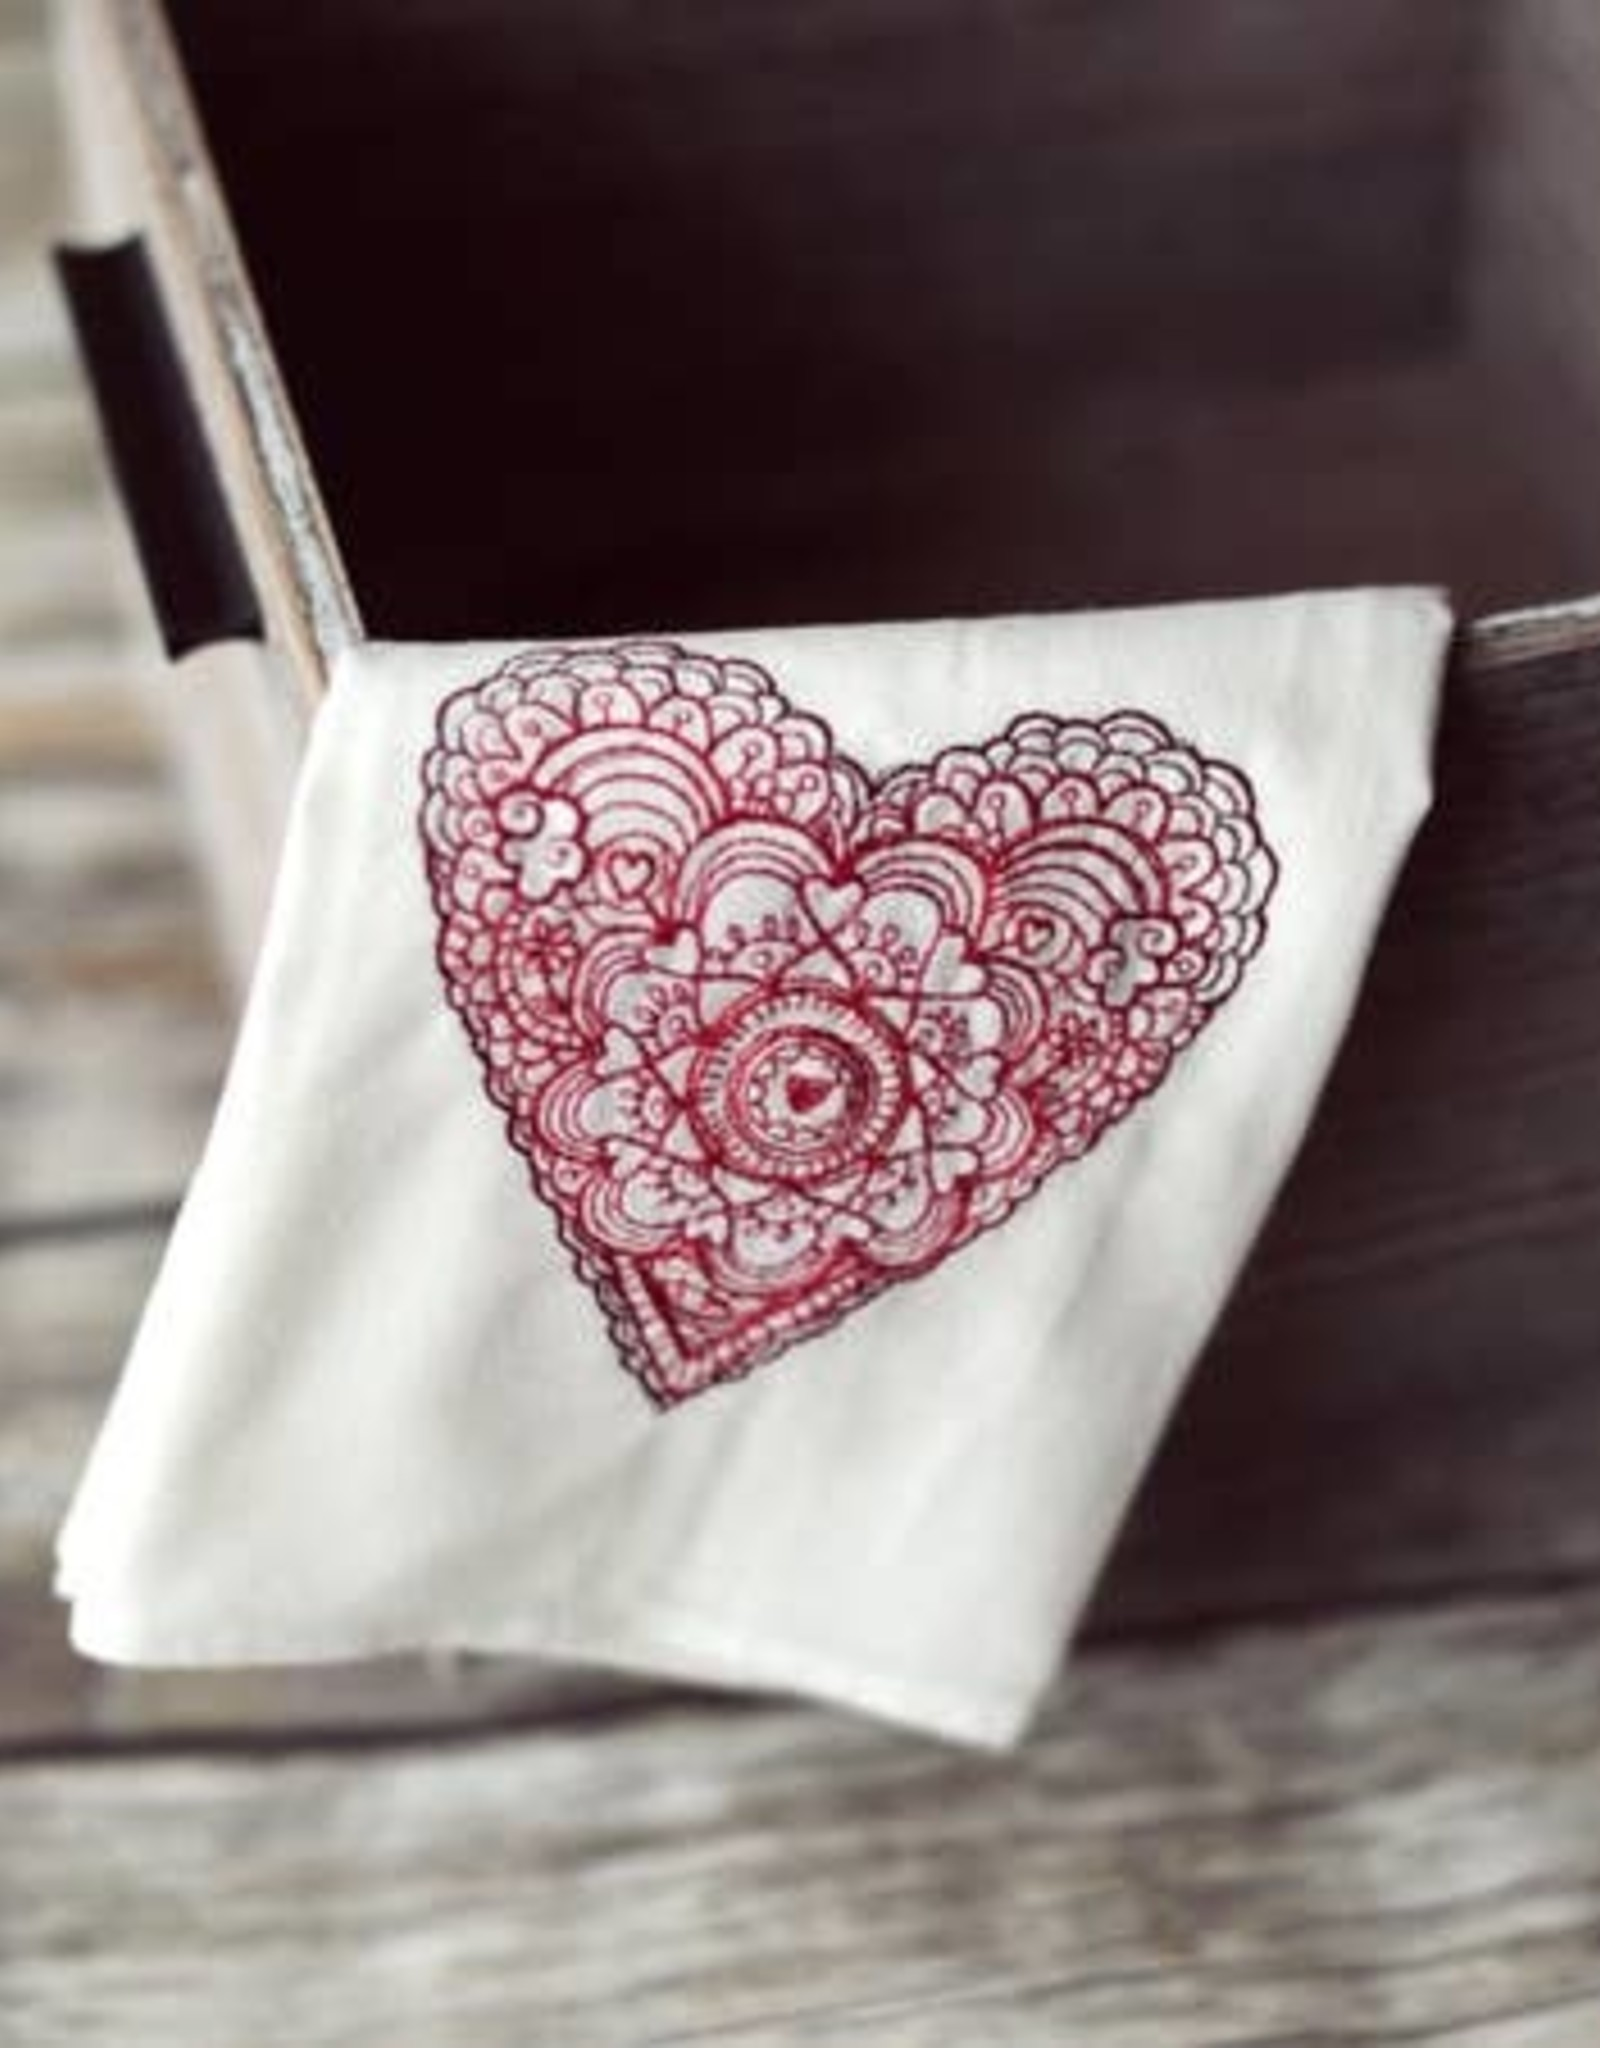 WINTER LACE HEART TEA TOWEL - Embroidered